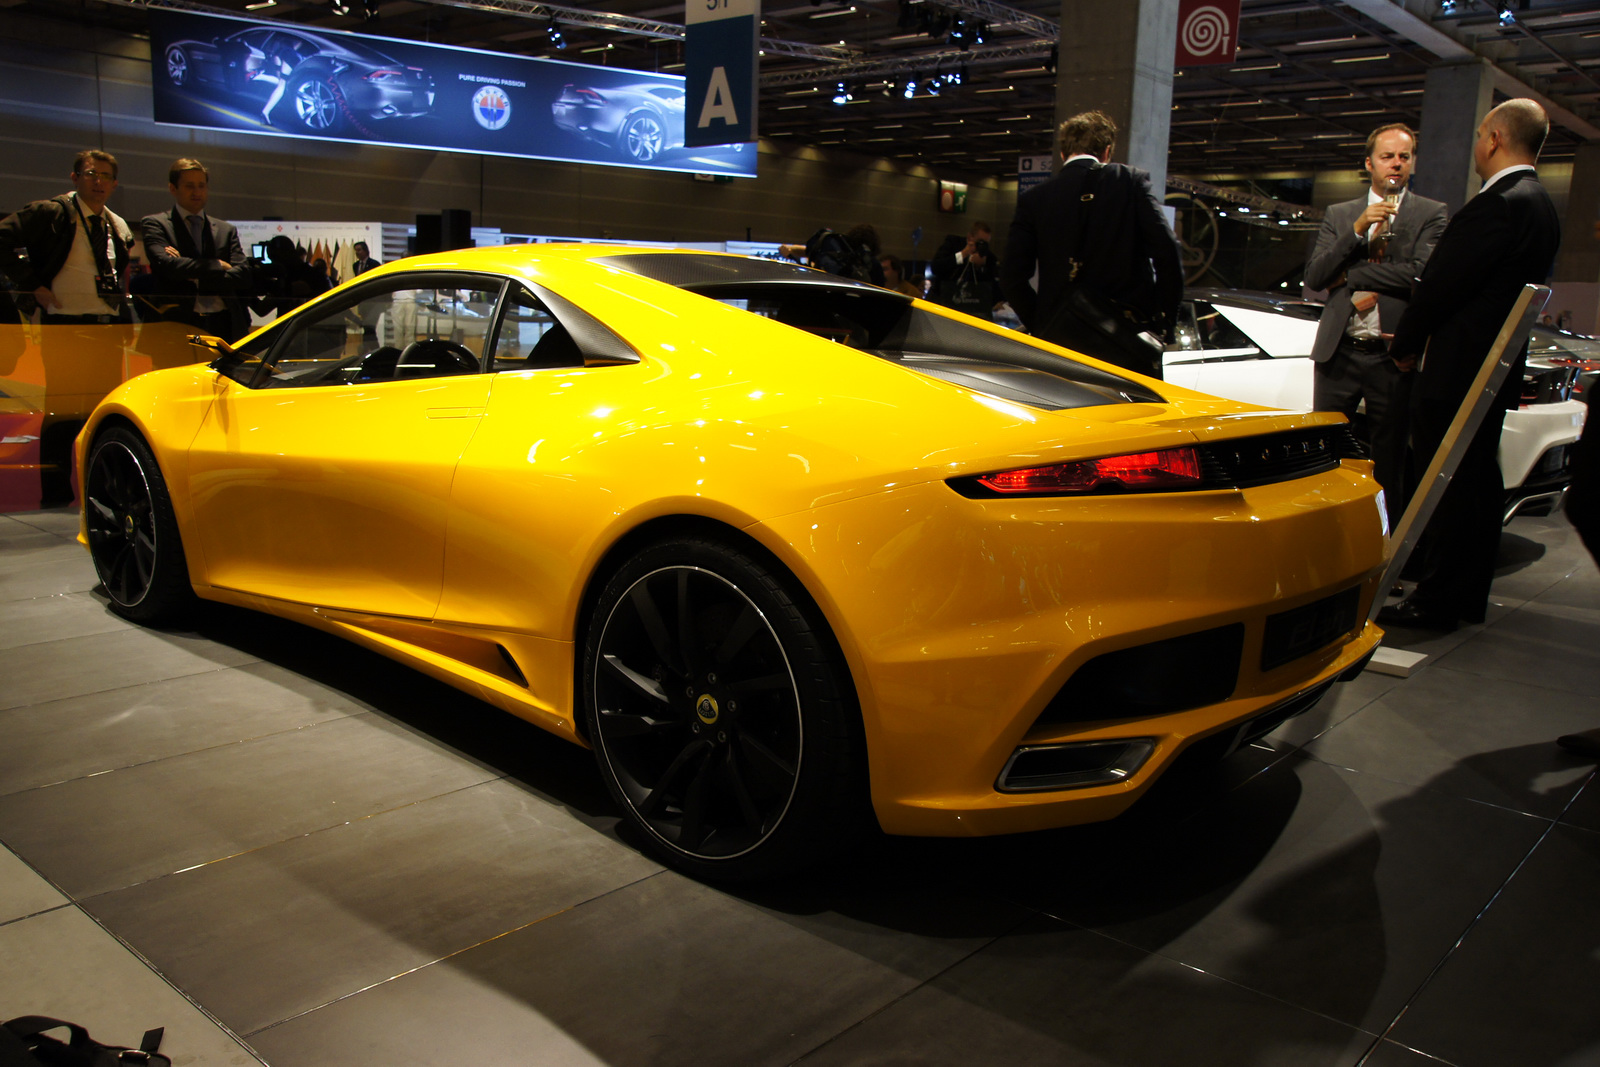 Lotus Elan Paris Auto Show High Resolution Wallpaper Free